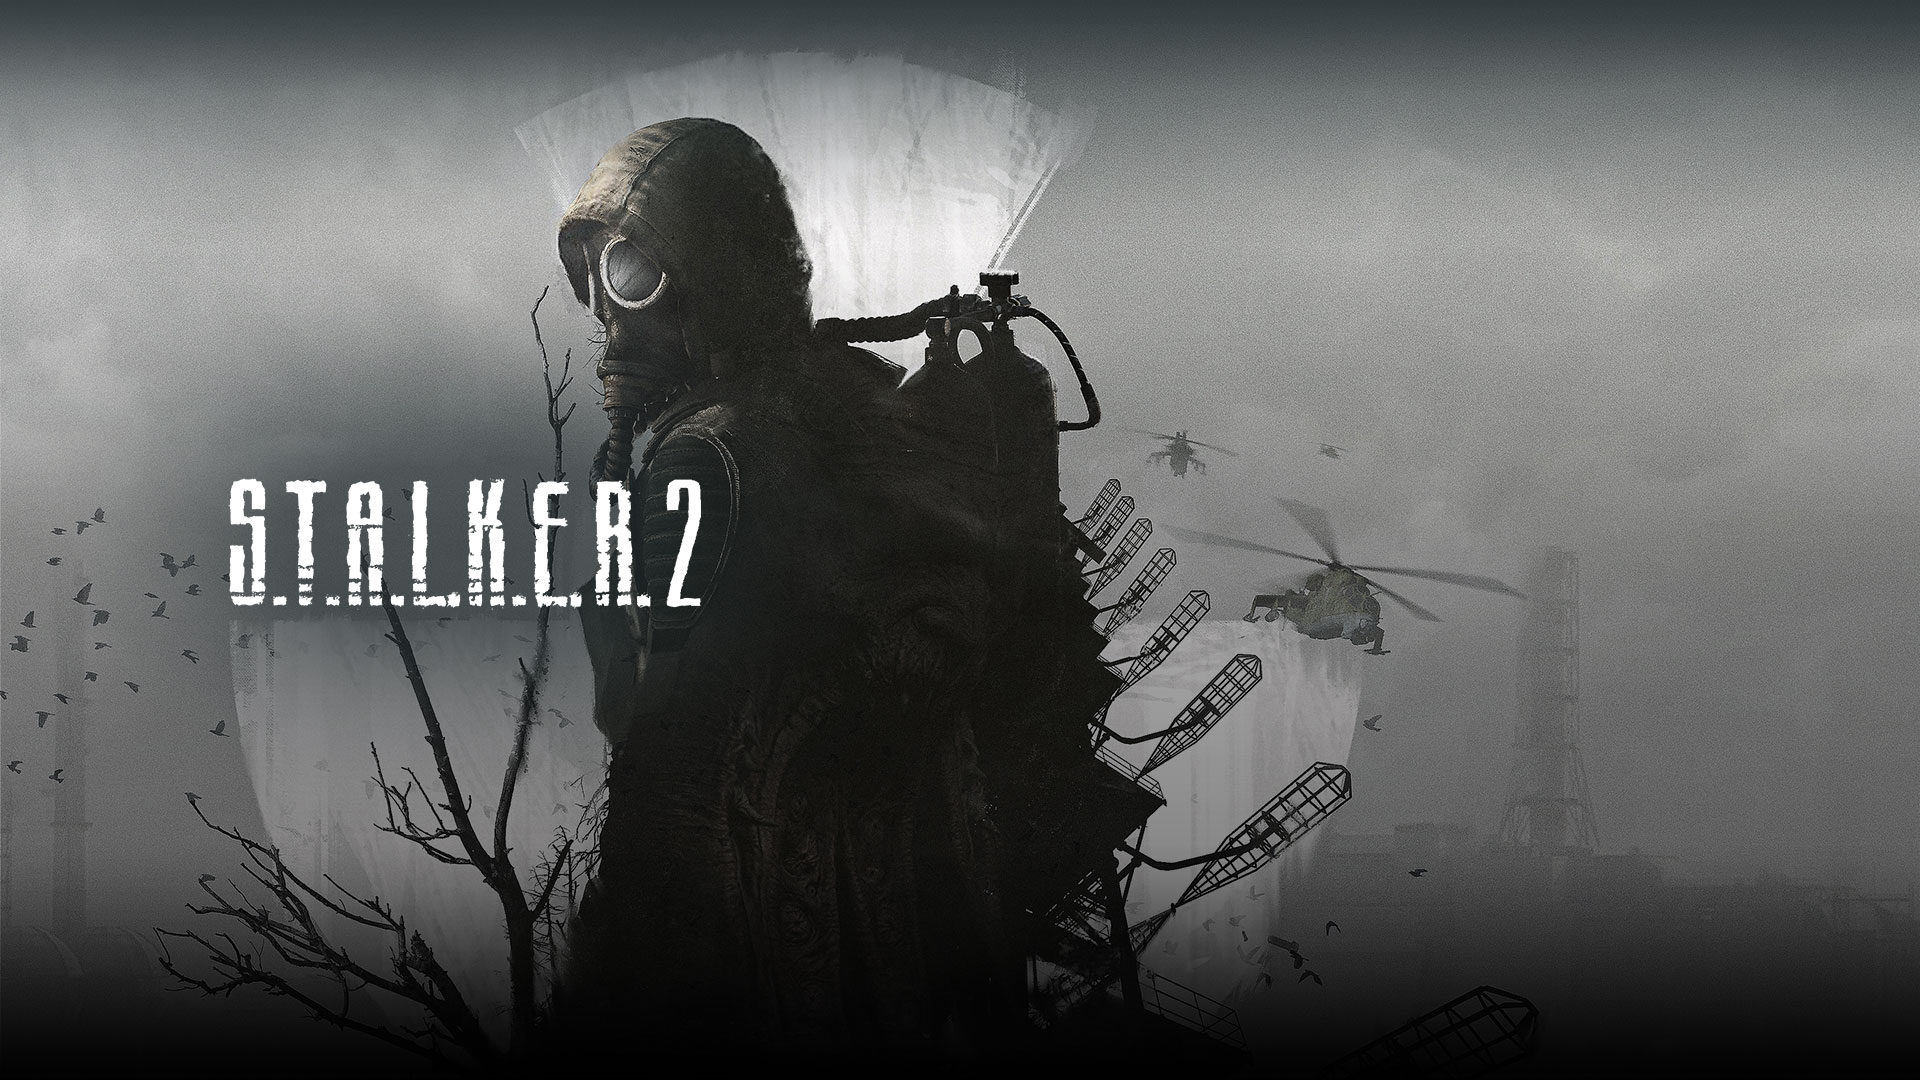 Stalker 2, A characters stands in a gas mask against a grey landscape with helicopters.